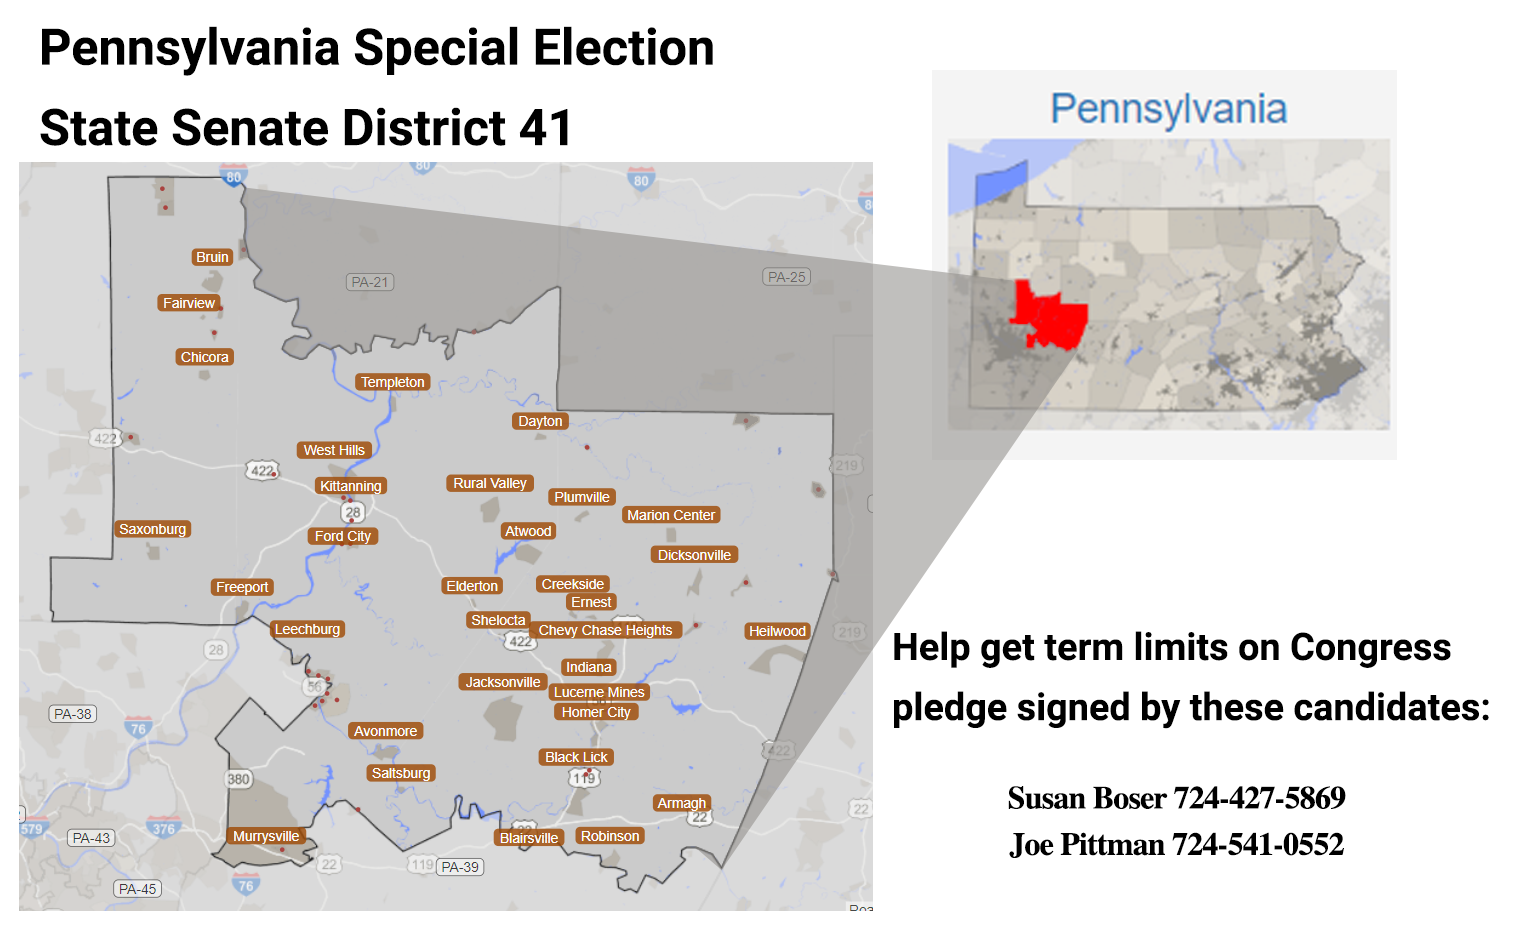 PA SD-41 ACTION ALERT: Term Limit Congress - U.S. Term Limits on antrim pa map, smicksburg pa map, limerick pa map, marion center pa map, dublin pa map, green township pa map, norfolk pa map, new florence pa map, young township pa map, northumberland pa map, durham pa map, beaver pa map, middlesex pa map, letterkenny pa map, lucerne mines pa map, johnstown pa map, glasgow pa map, lurgan pa map, salisbury pa map, cornwall pa map,